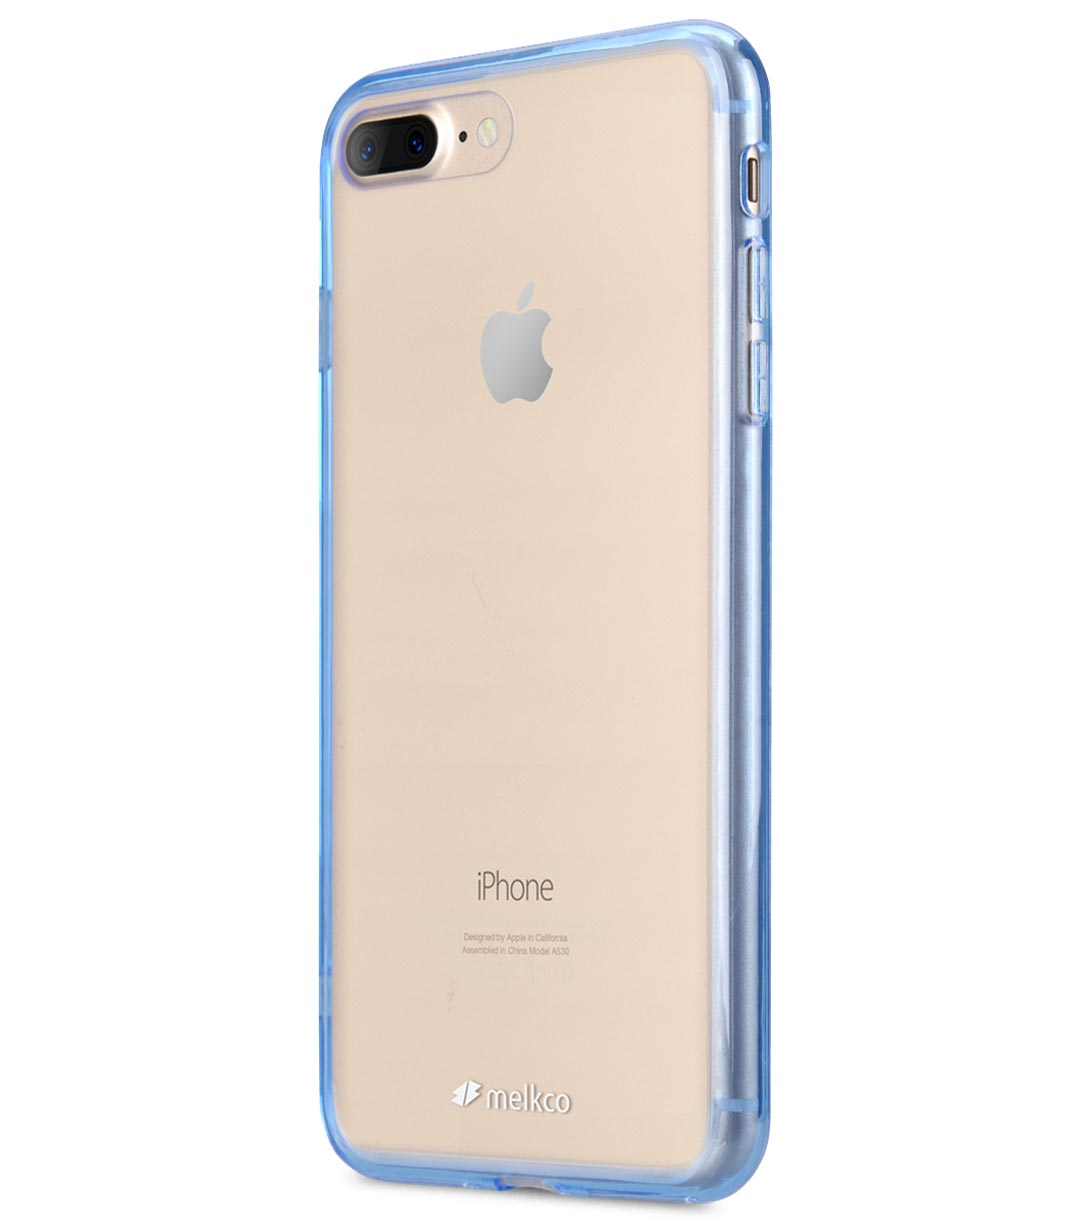 "Melkco Poly Ultima Case for Apple iPhone 7 / 8 Plus (5.5"") - Transparent Blue"